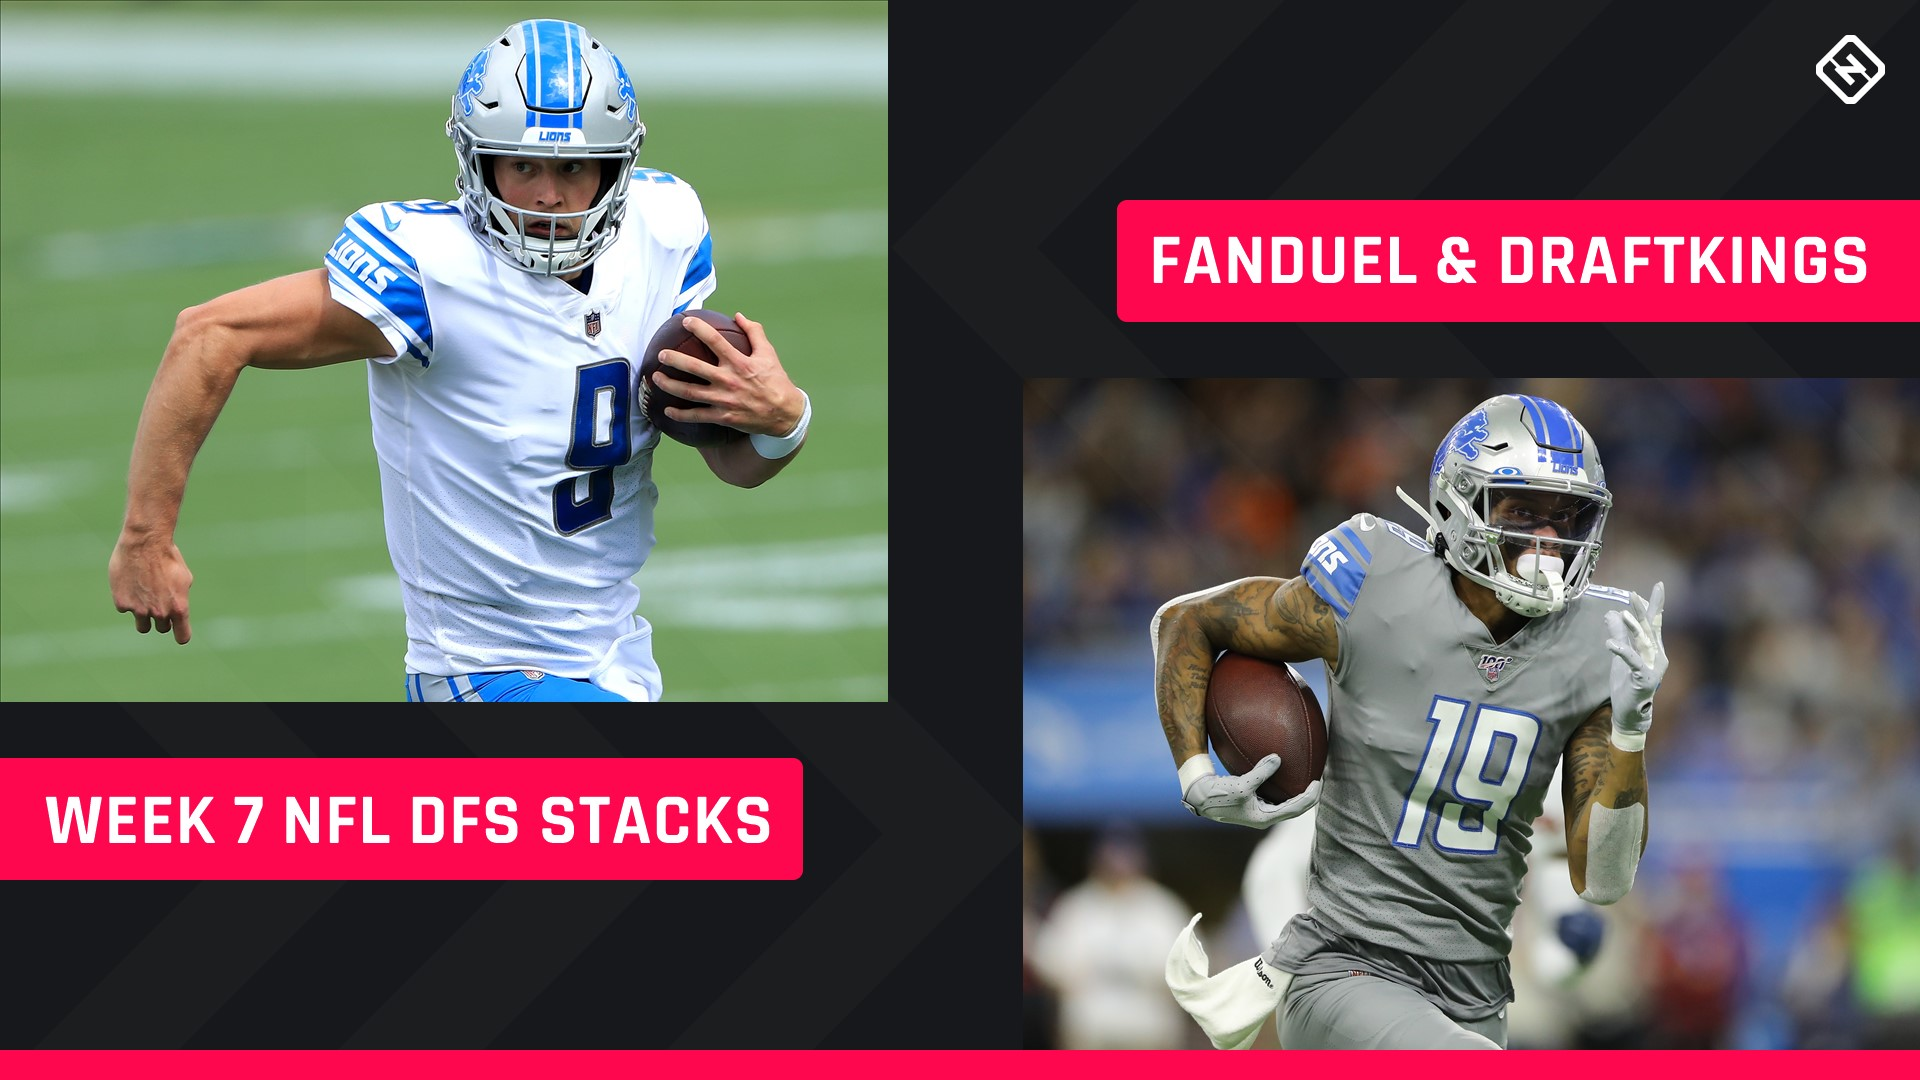 Week 7 Nfl Dfs Stacks Best Lineup Picks For Draftkings Fanduel Tournaments Cash Games The West News